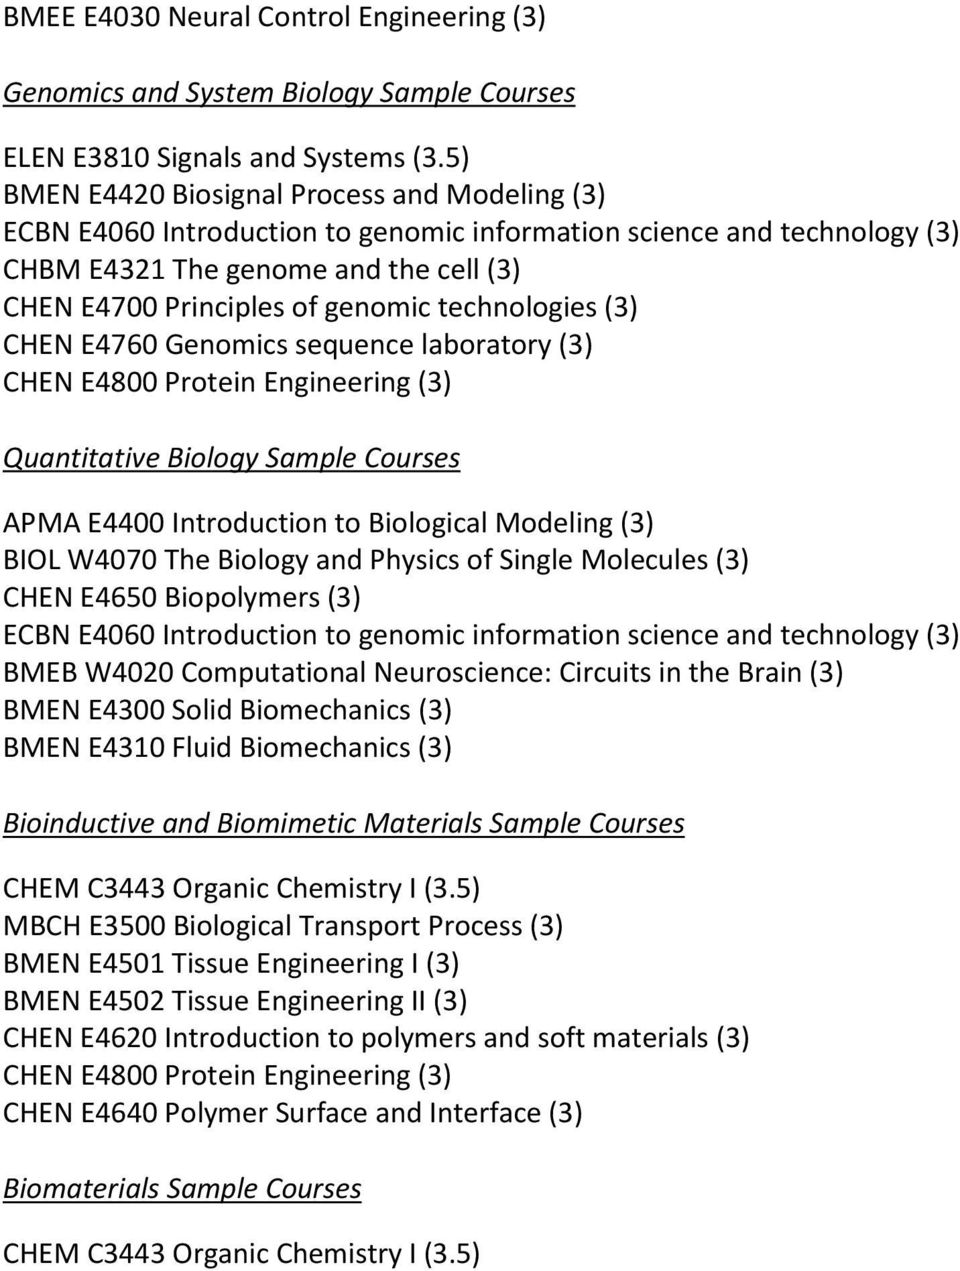 technologies (3) CHEN E4760 Genomics sequence laboratory (3) CHEN E4800 Protein Engineering (3) Quantitative Biology Sample Courses APMA E4400 Introduction to Biological Modeling (3) BIOL W4070 The